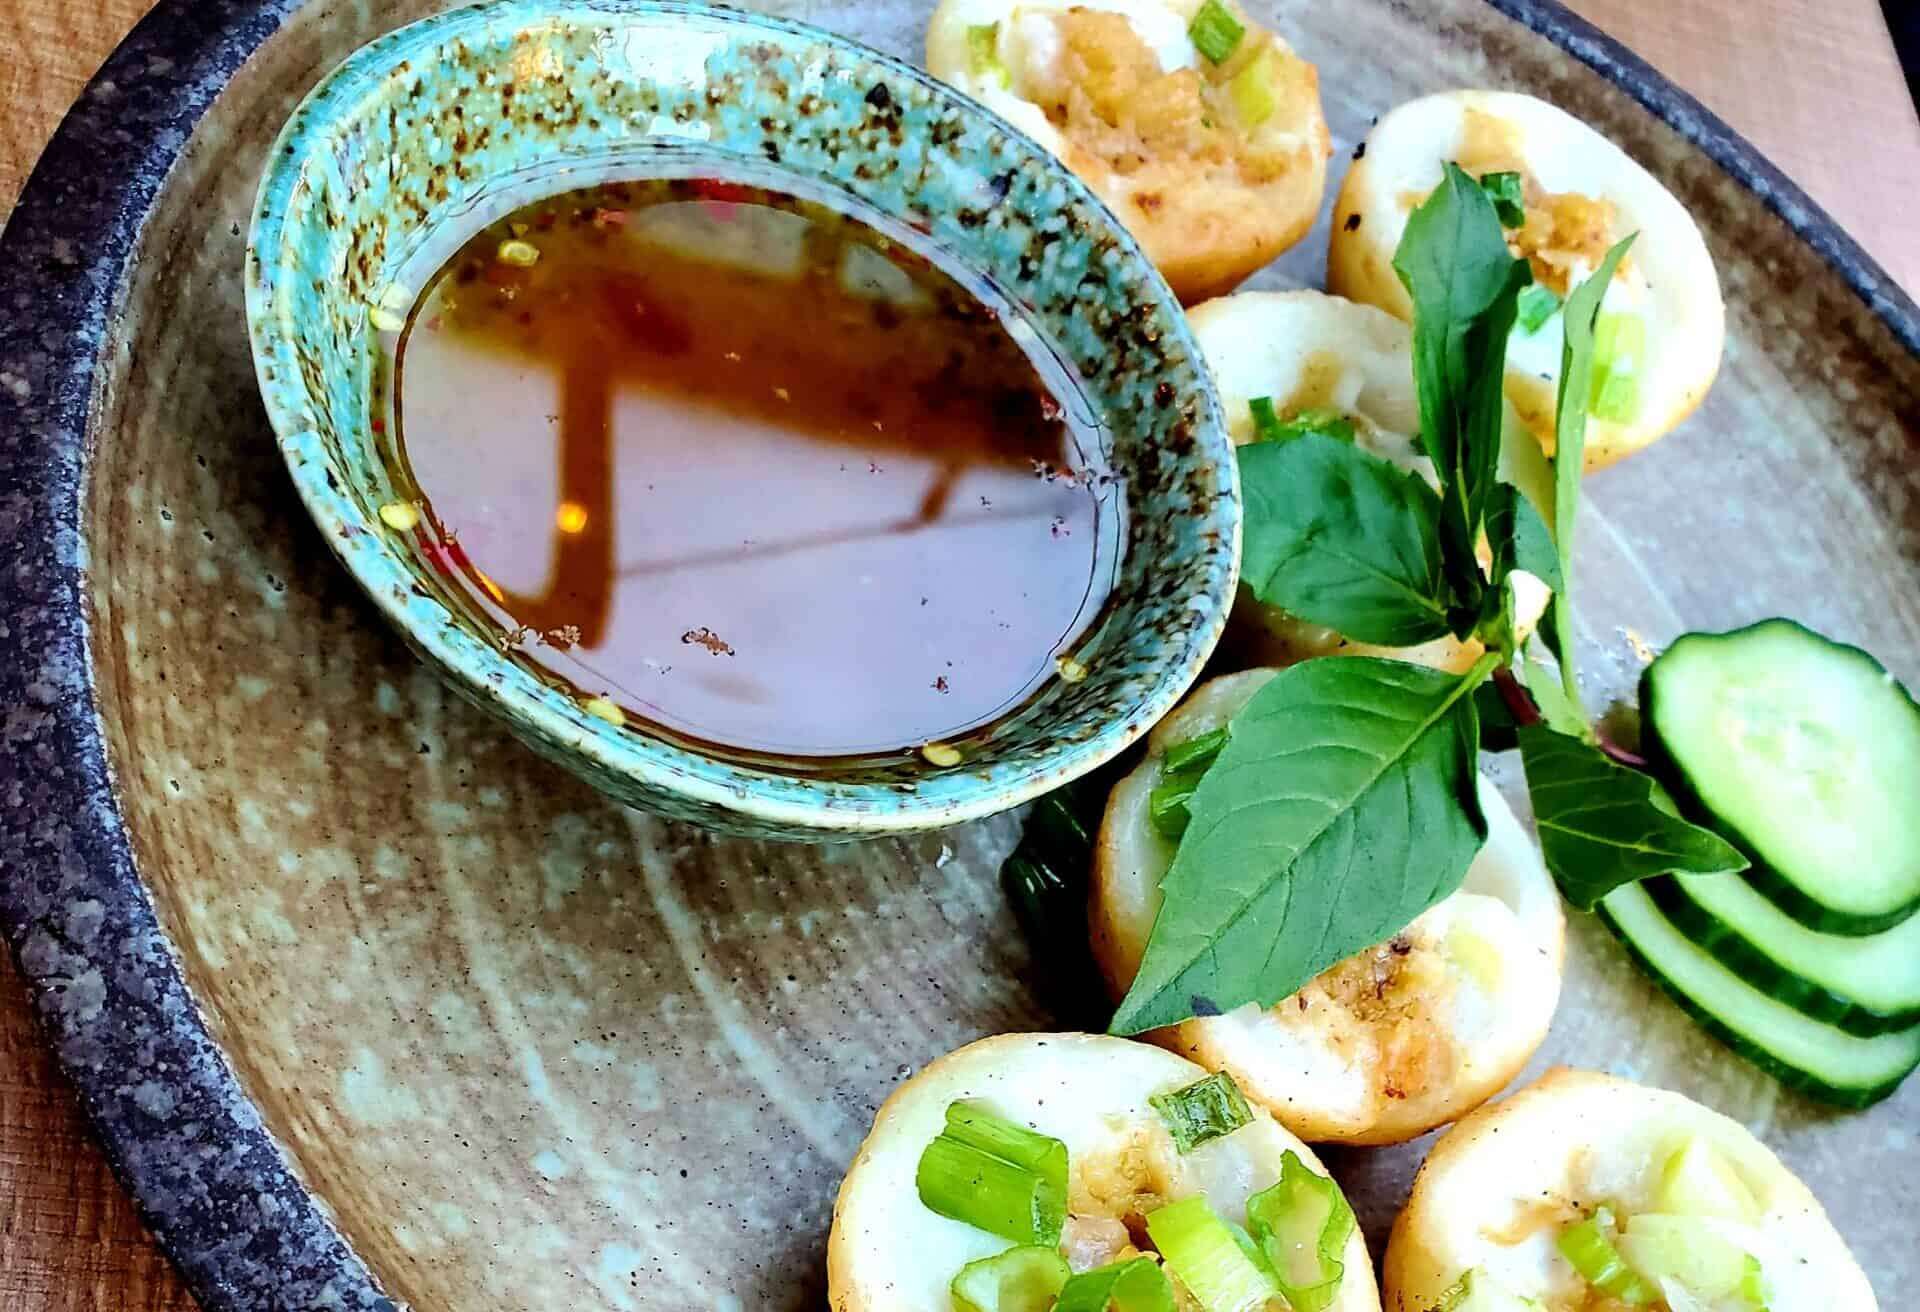 EcoLux☆Lifestyle: Do Chay Vietnamese is a Delightful Plantbased Hideway in Busy Yaletown